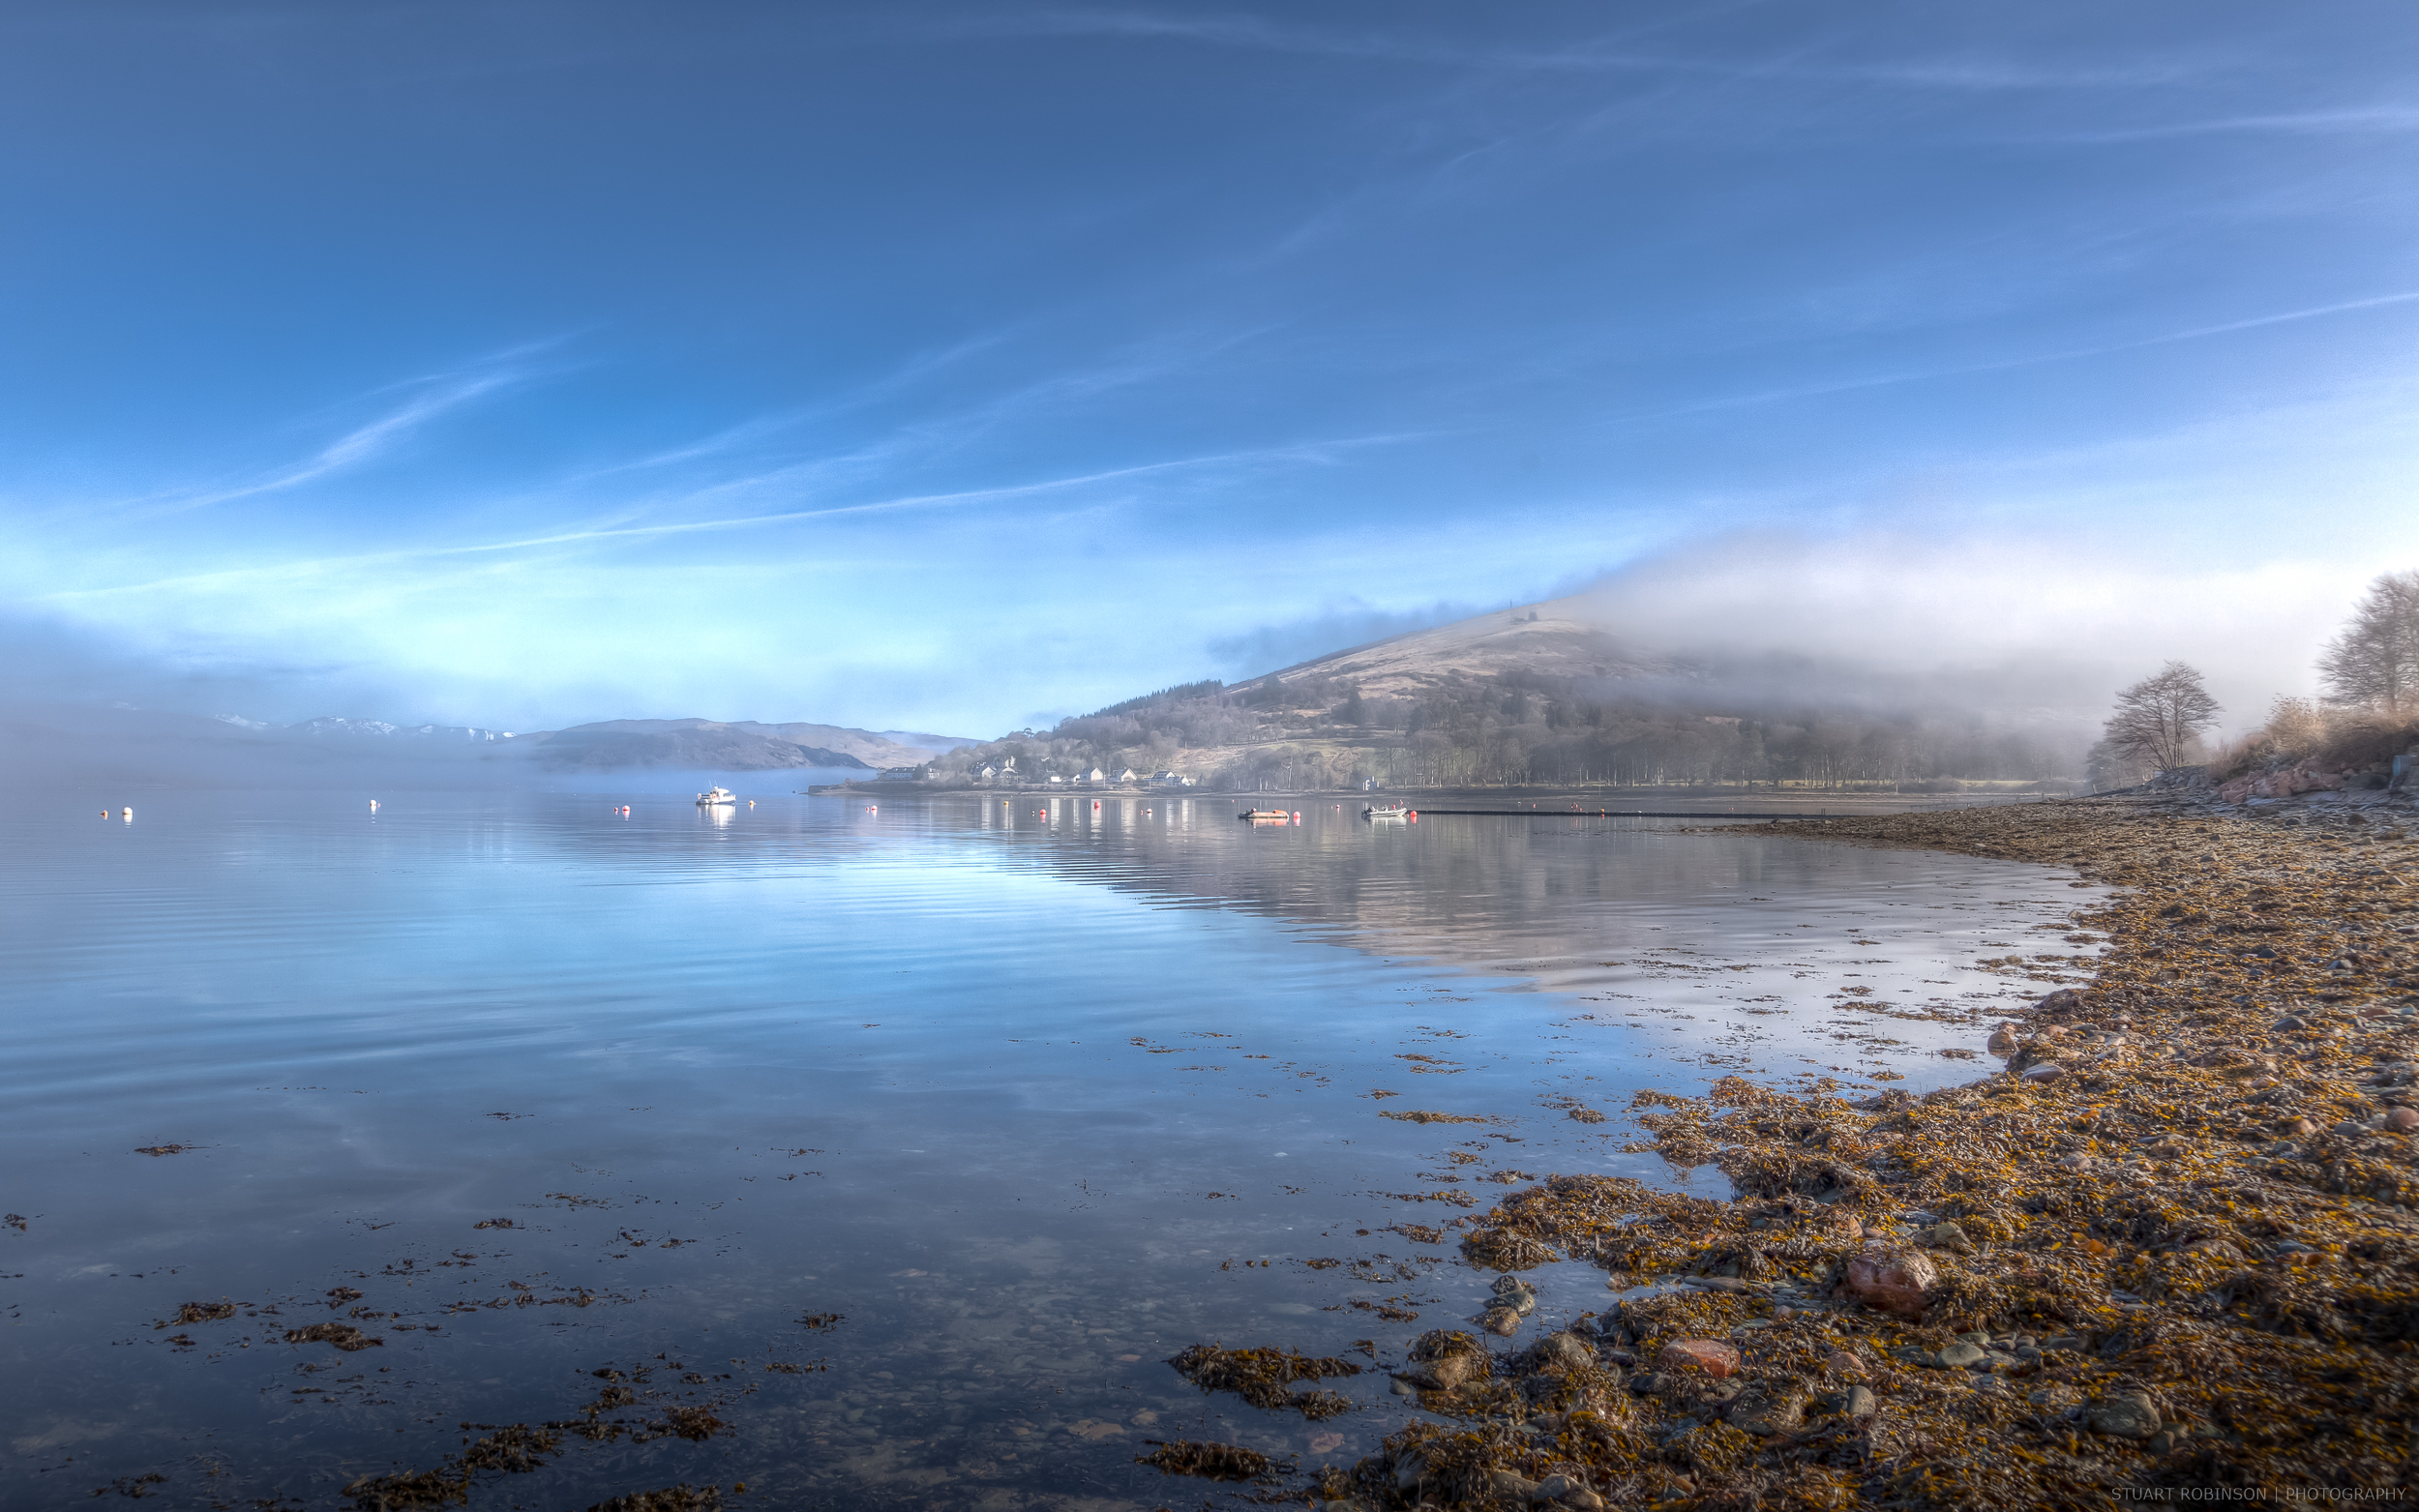 Strachur Morning Mist  - Canon EOS 5D Mark II, EF 24-105mm f4L, 45mm, 28mm, 1/320 sec at f/8, ISO 100